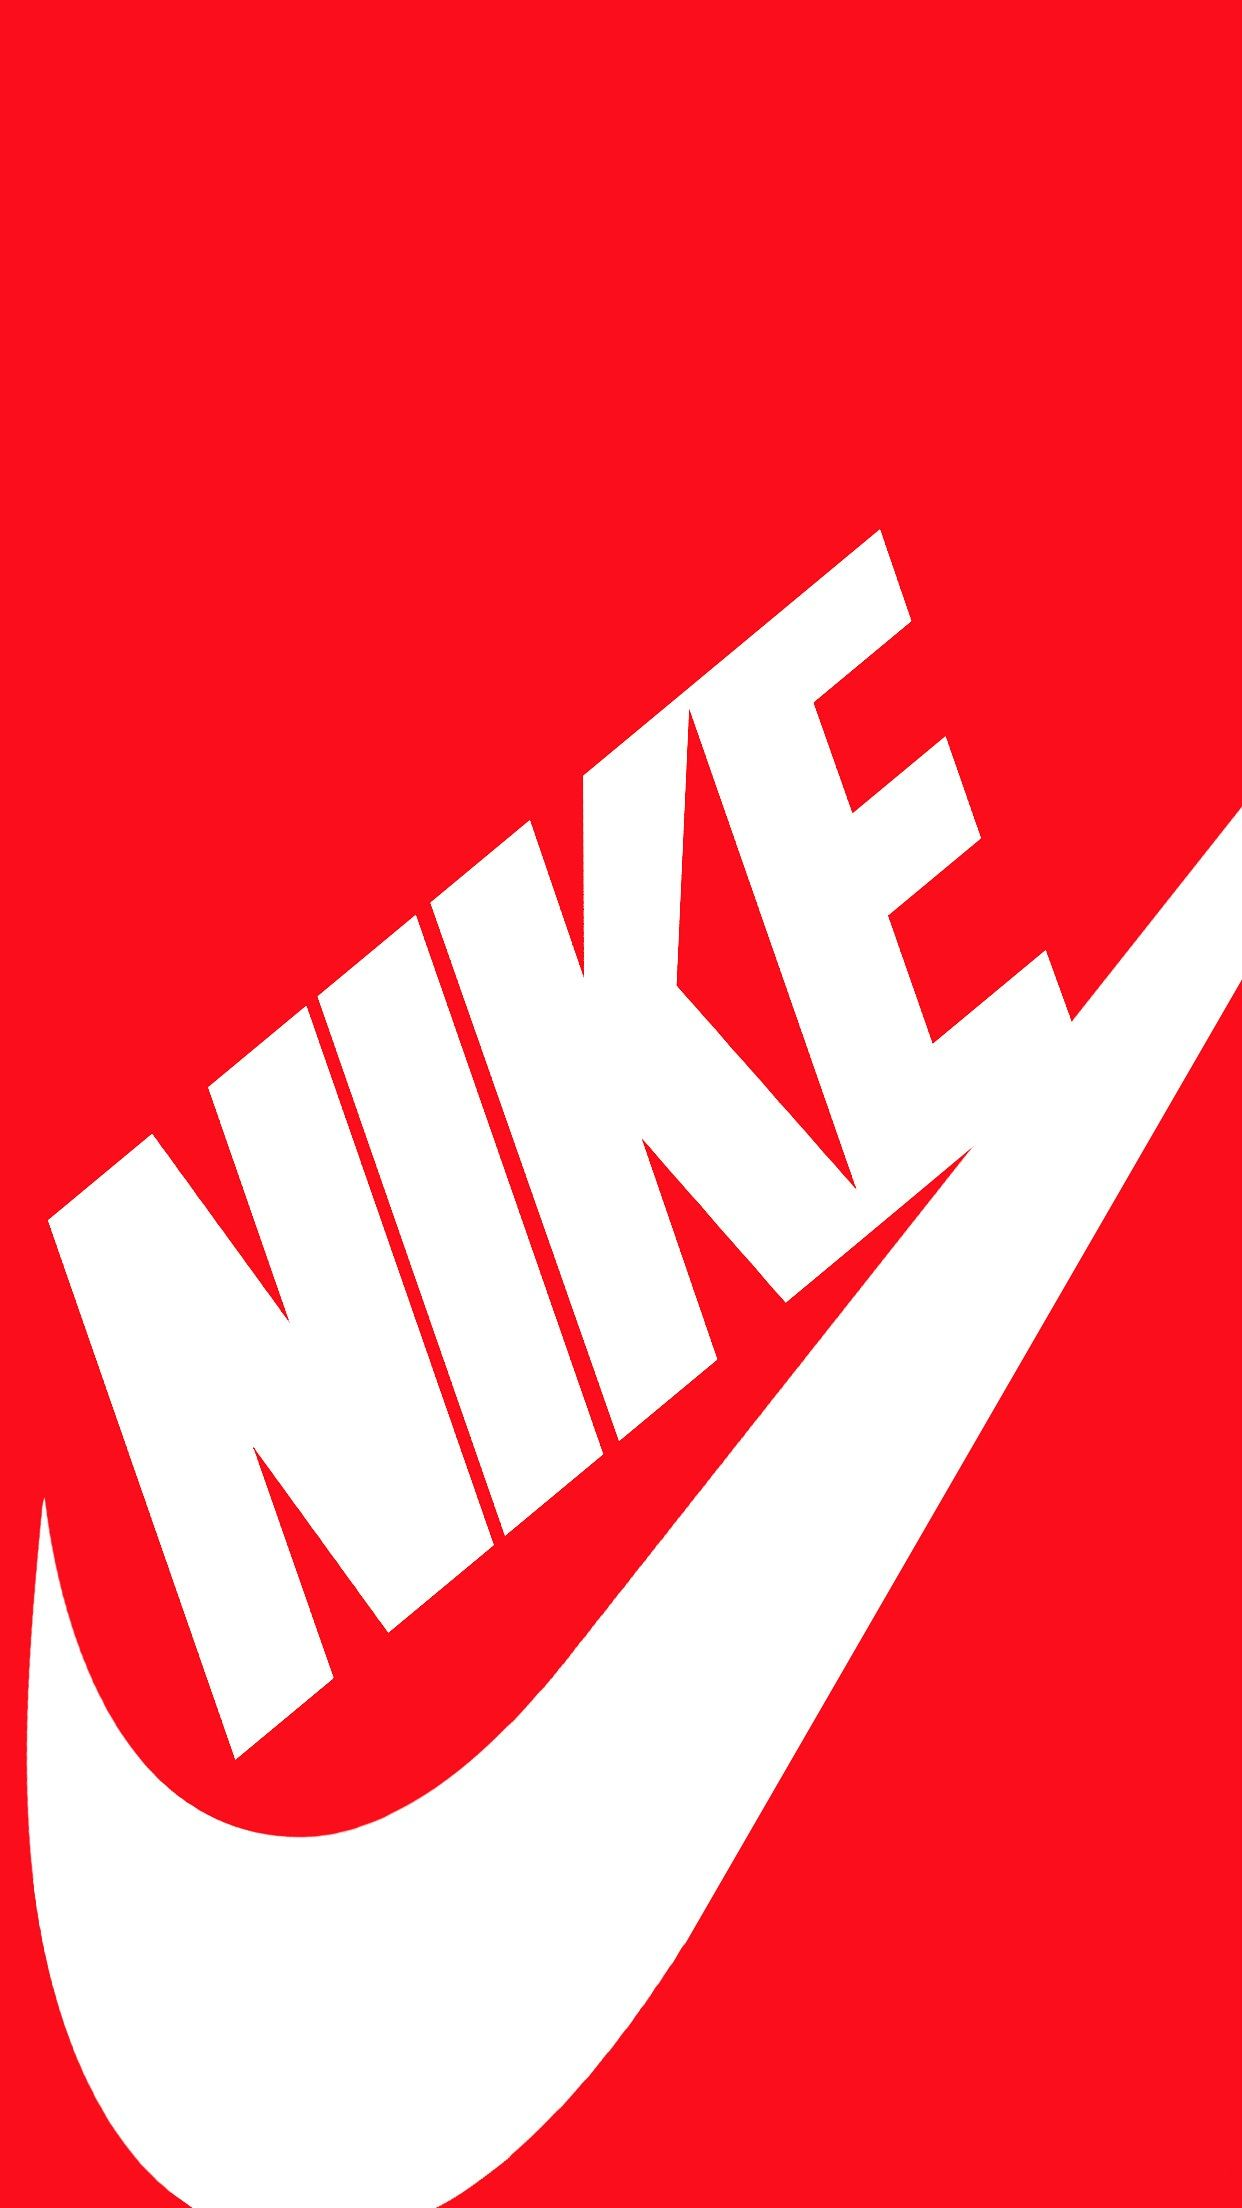 Nike Iphone Wallpaper Red Best Iphone Wallpaper ナイキ